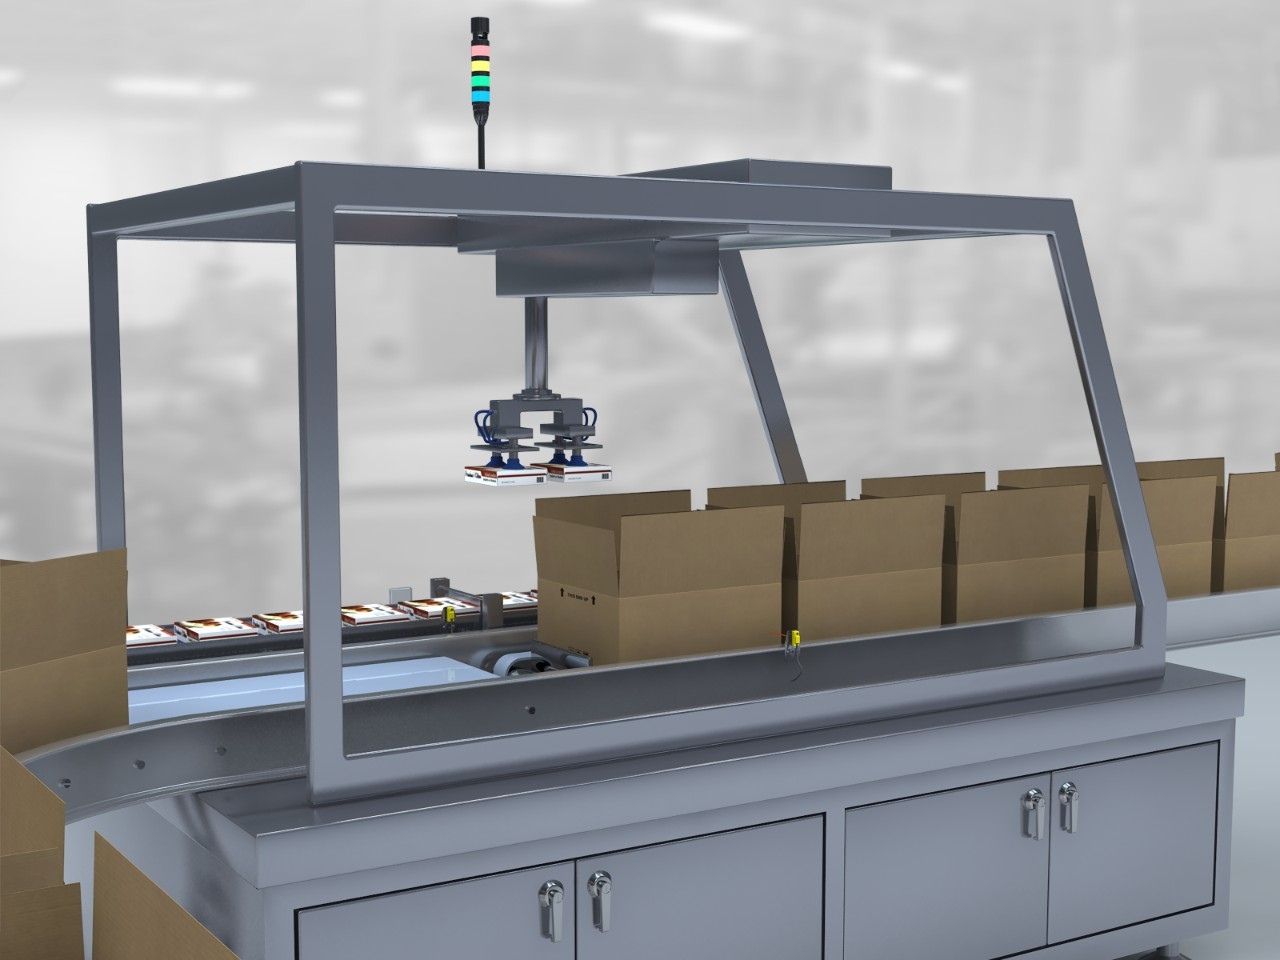 Case Packer for Food Packaging